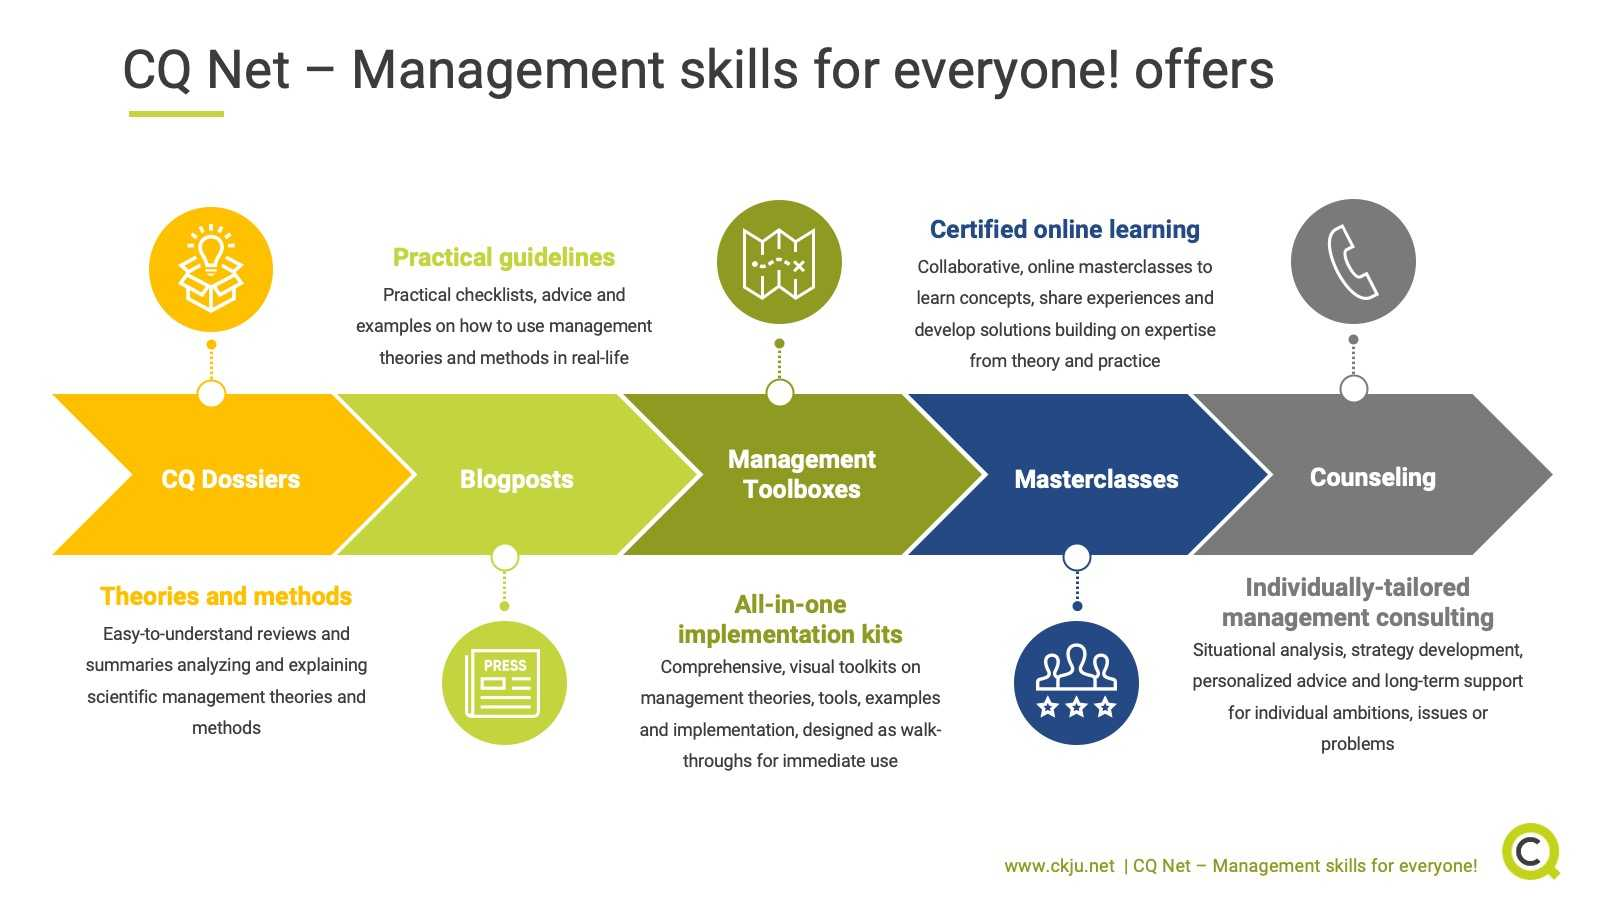 What we offer at CQ Net - Management skills for everyone!